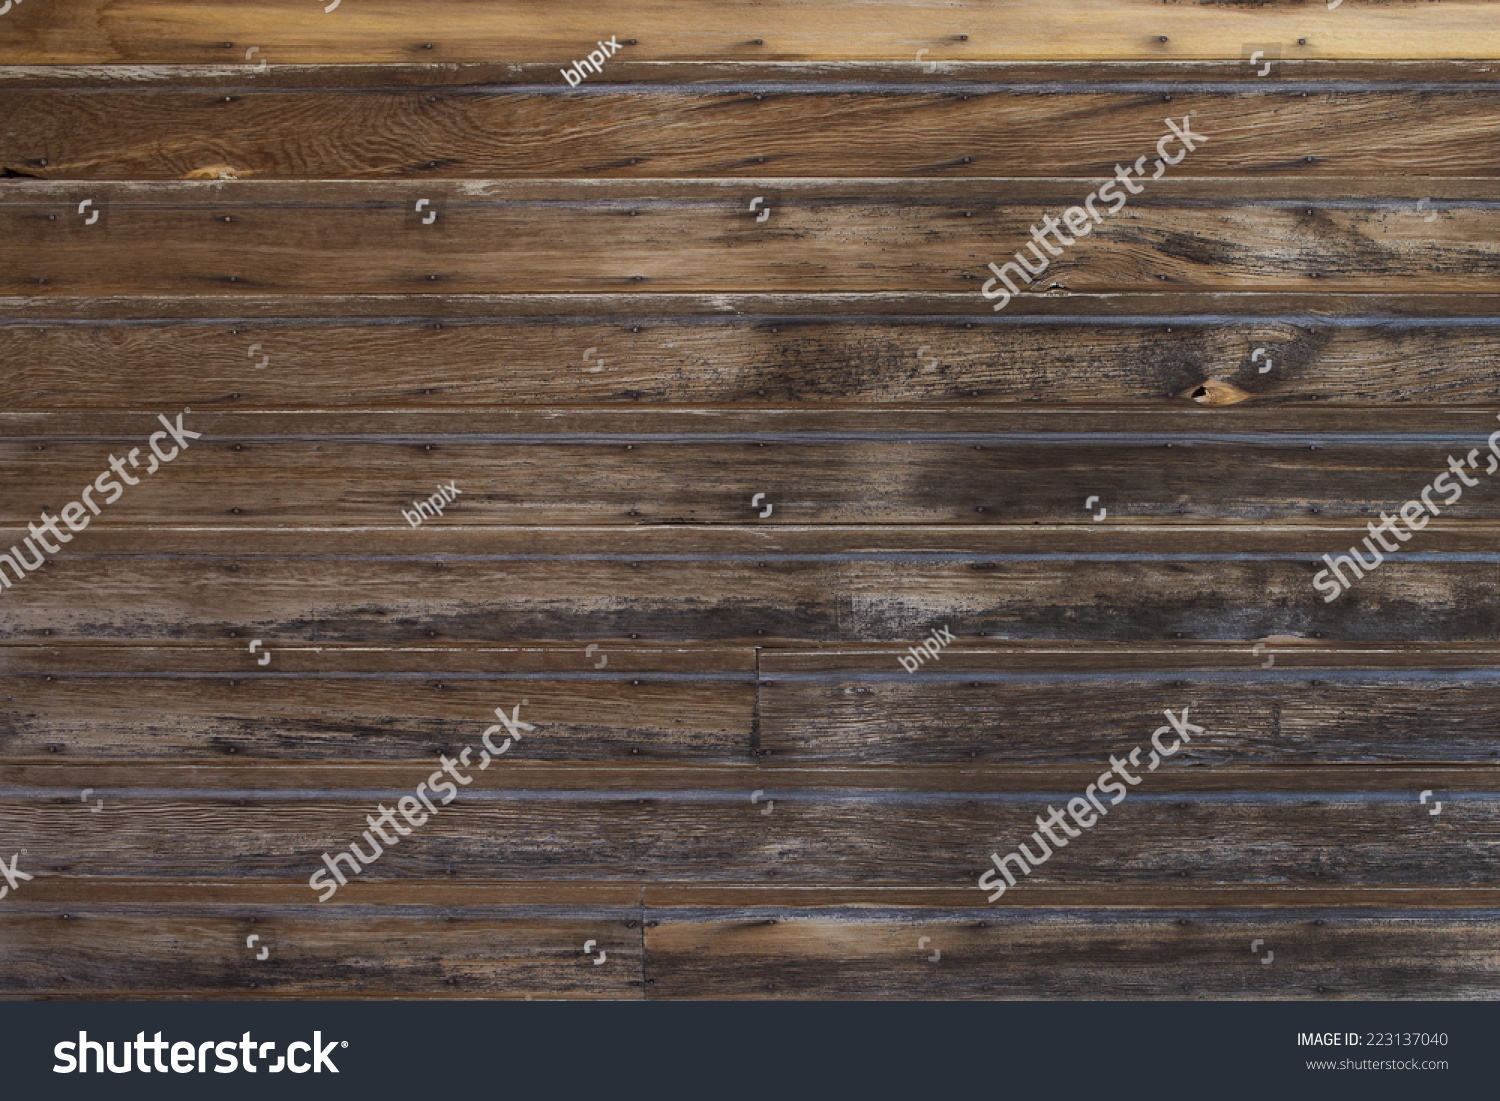 Old Rustic Wood Siding Horizontal Background Texture Preview Save to a  lightbox  Old Rustic Wood. Texture Horizontal Wooden Siding